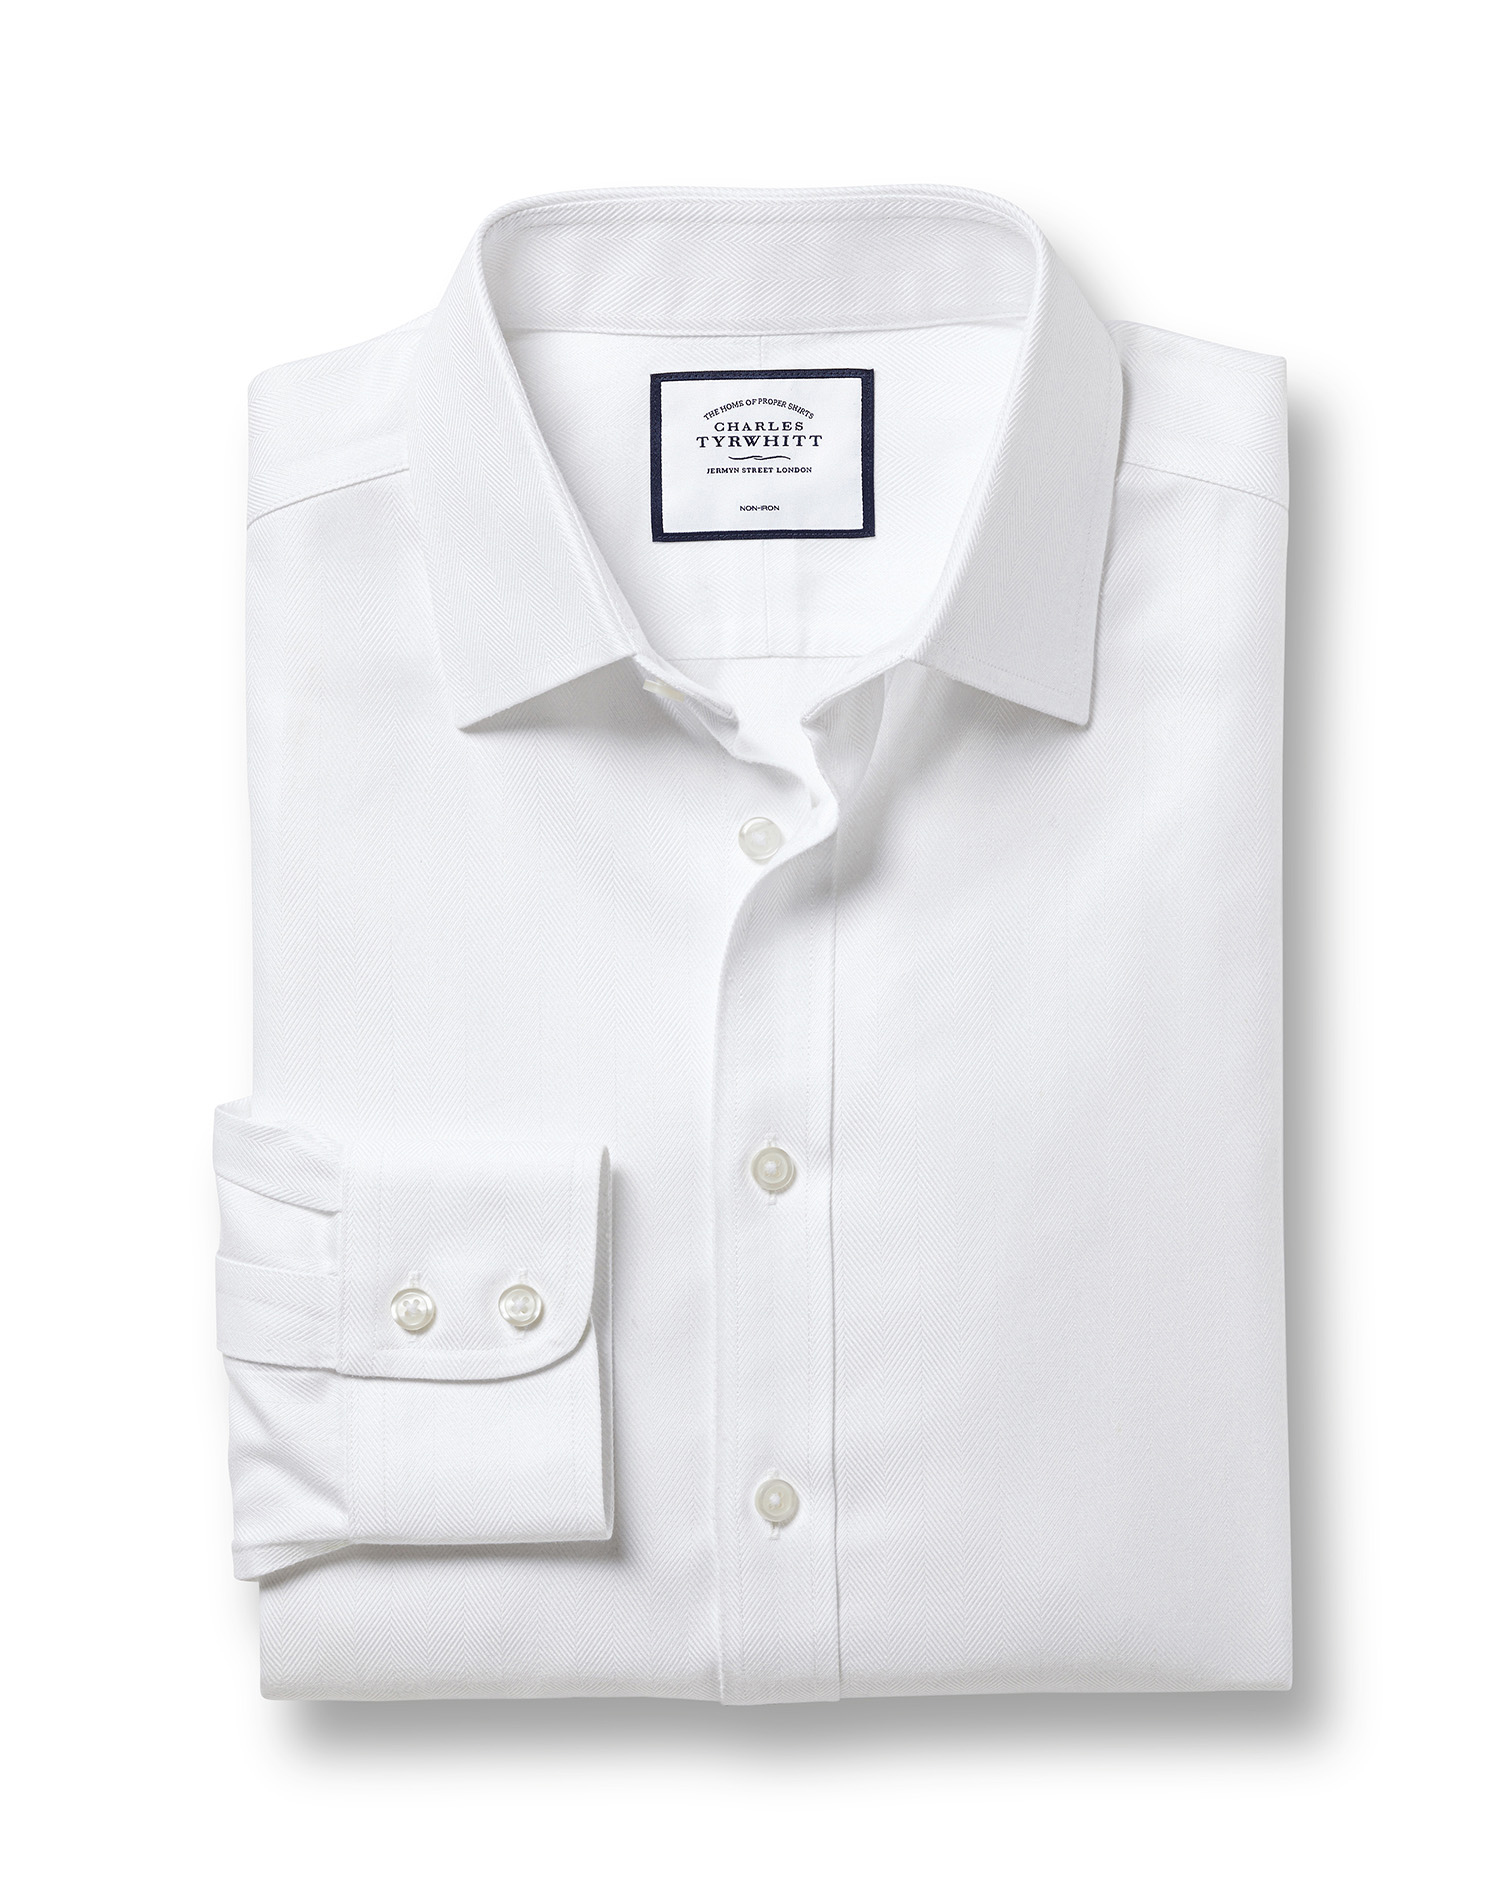 Classic Fit Non-Iron White Herringbone Cotton Formal Shirt Single Cuff Size 16.5/33 by Charles Tyrwh